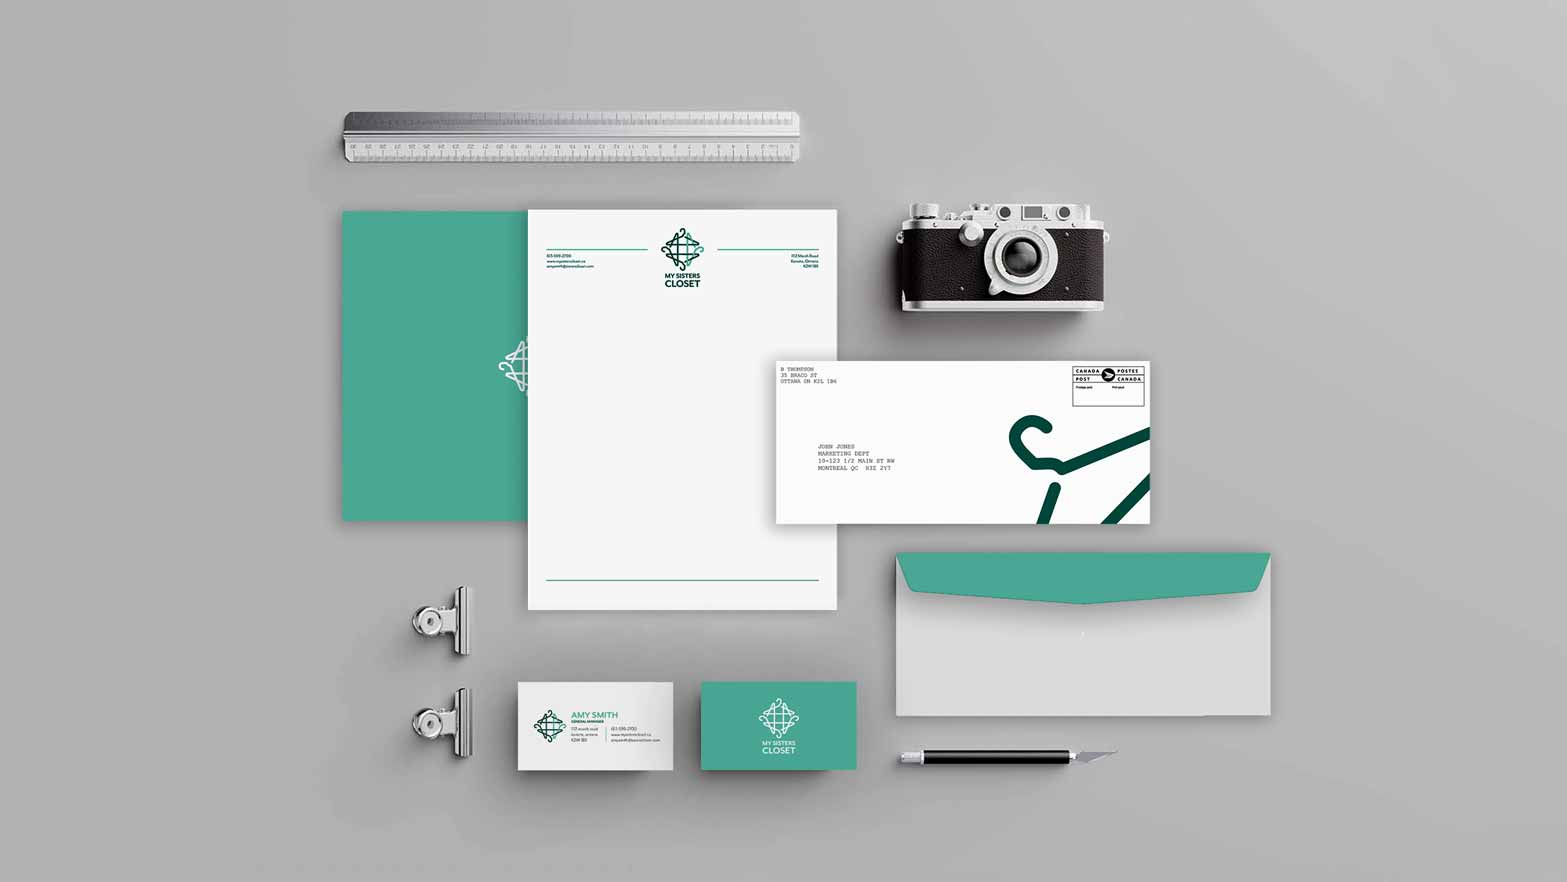 This project was a re-branding for a local store in my area, including a new logo, a full stationary package and branding guide.